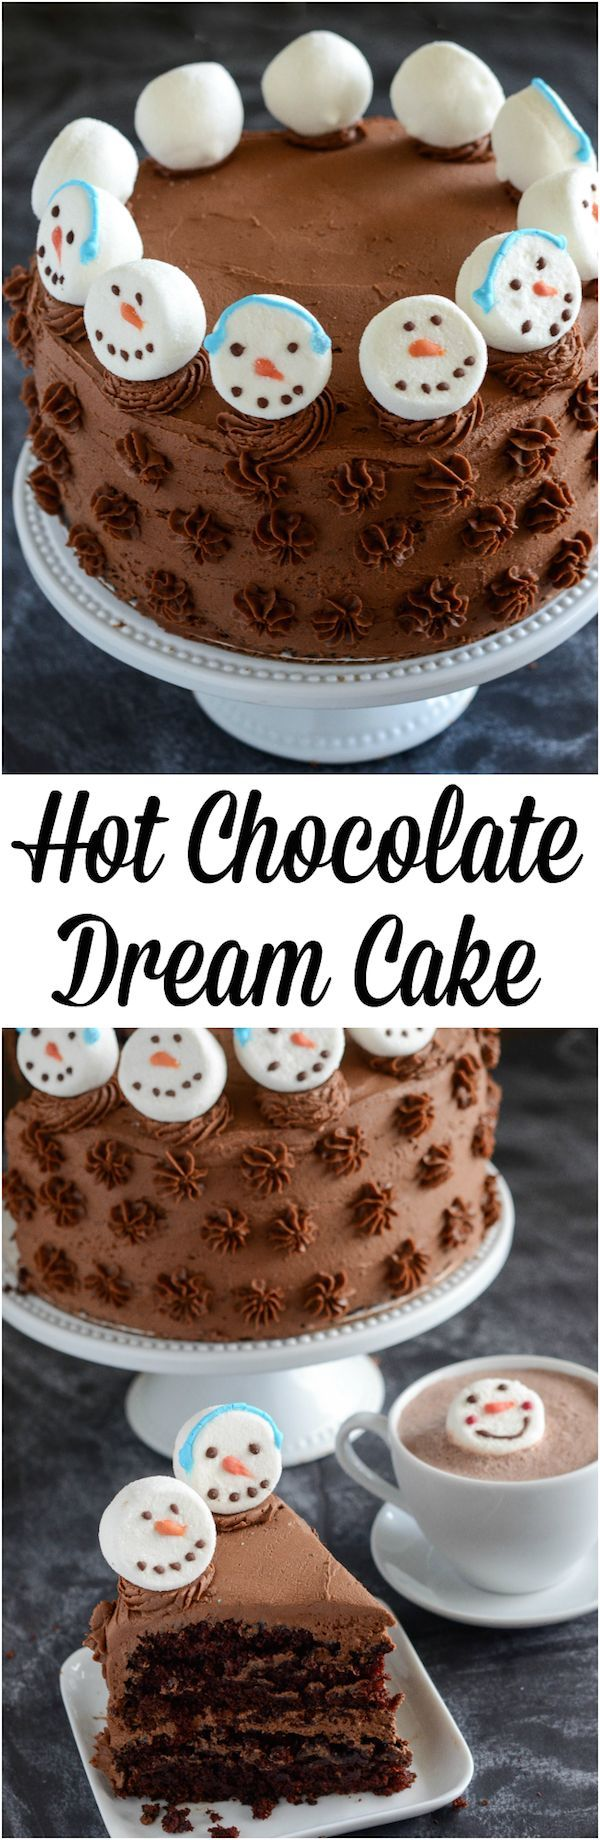 Hot Chocolate Dream Cake